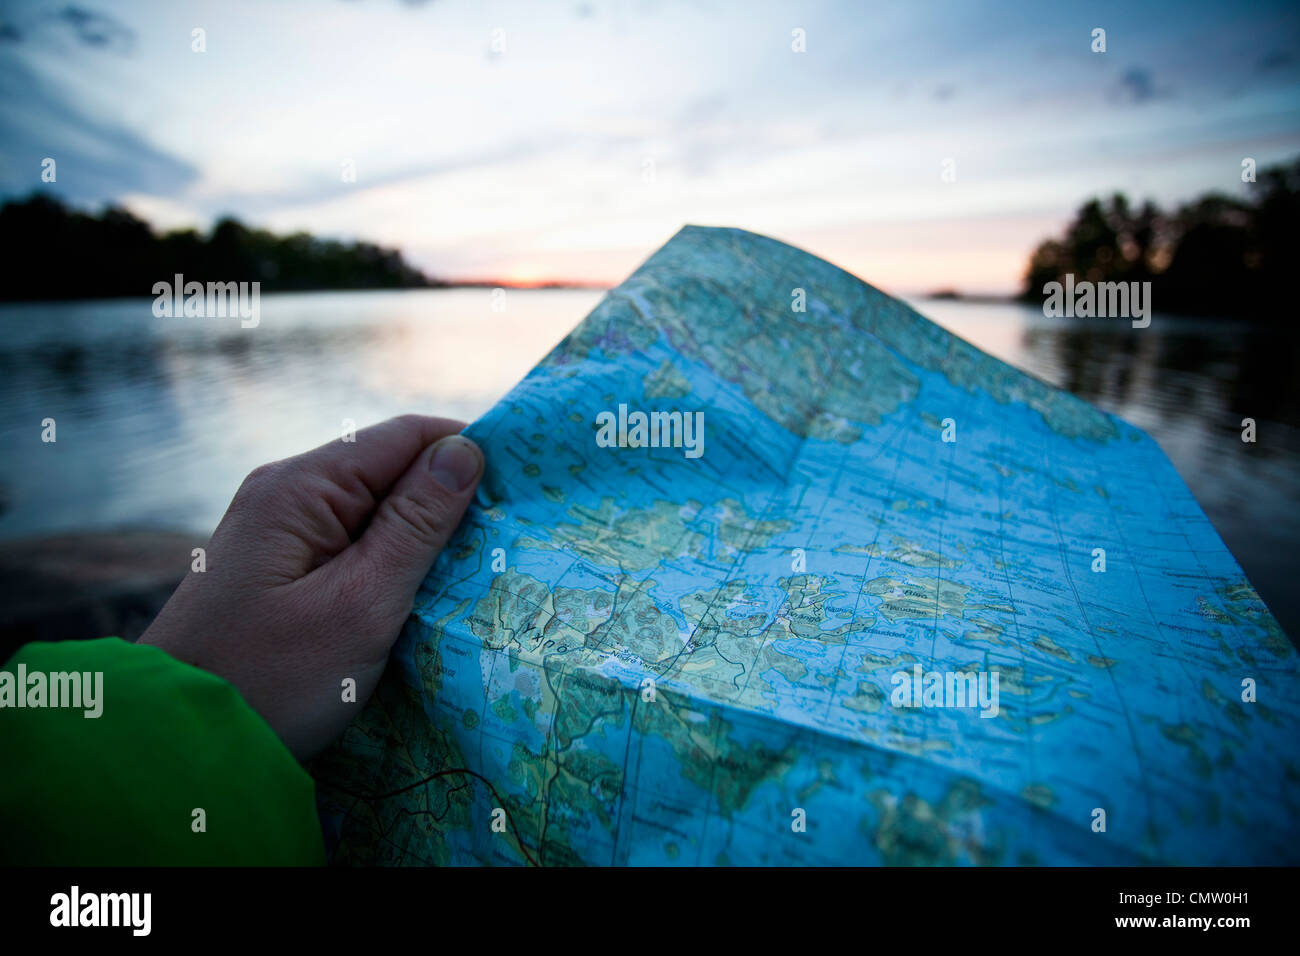 Hiker holding map nearby lake - Stock Image